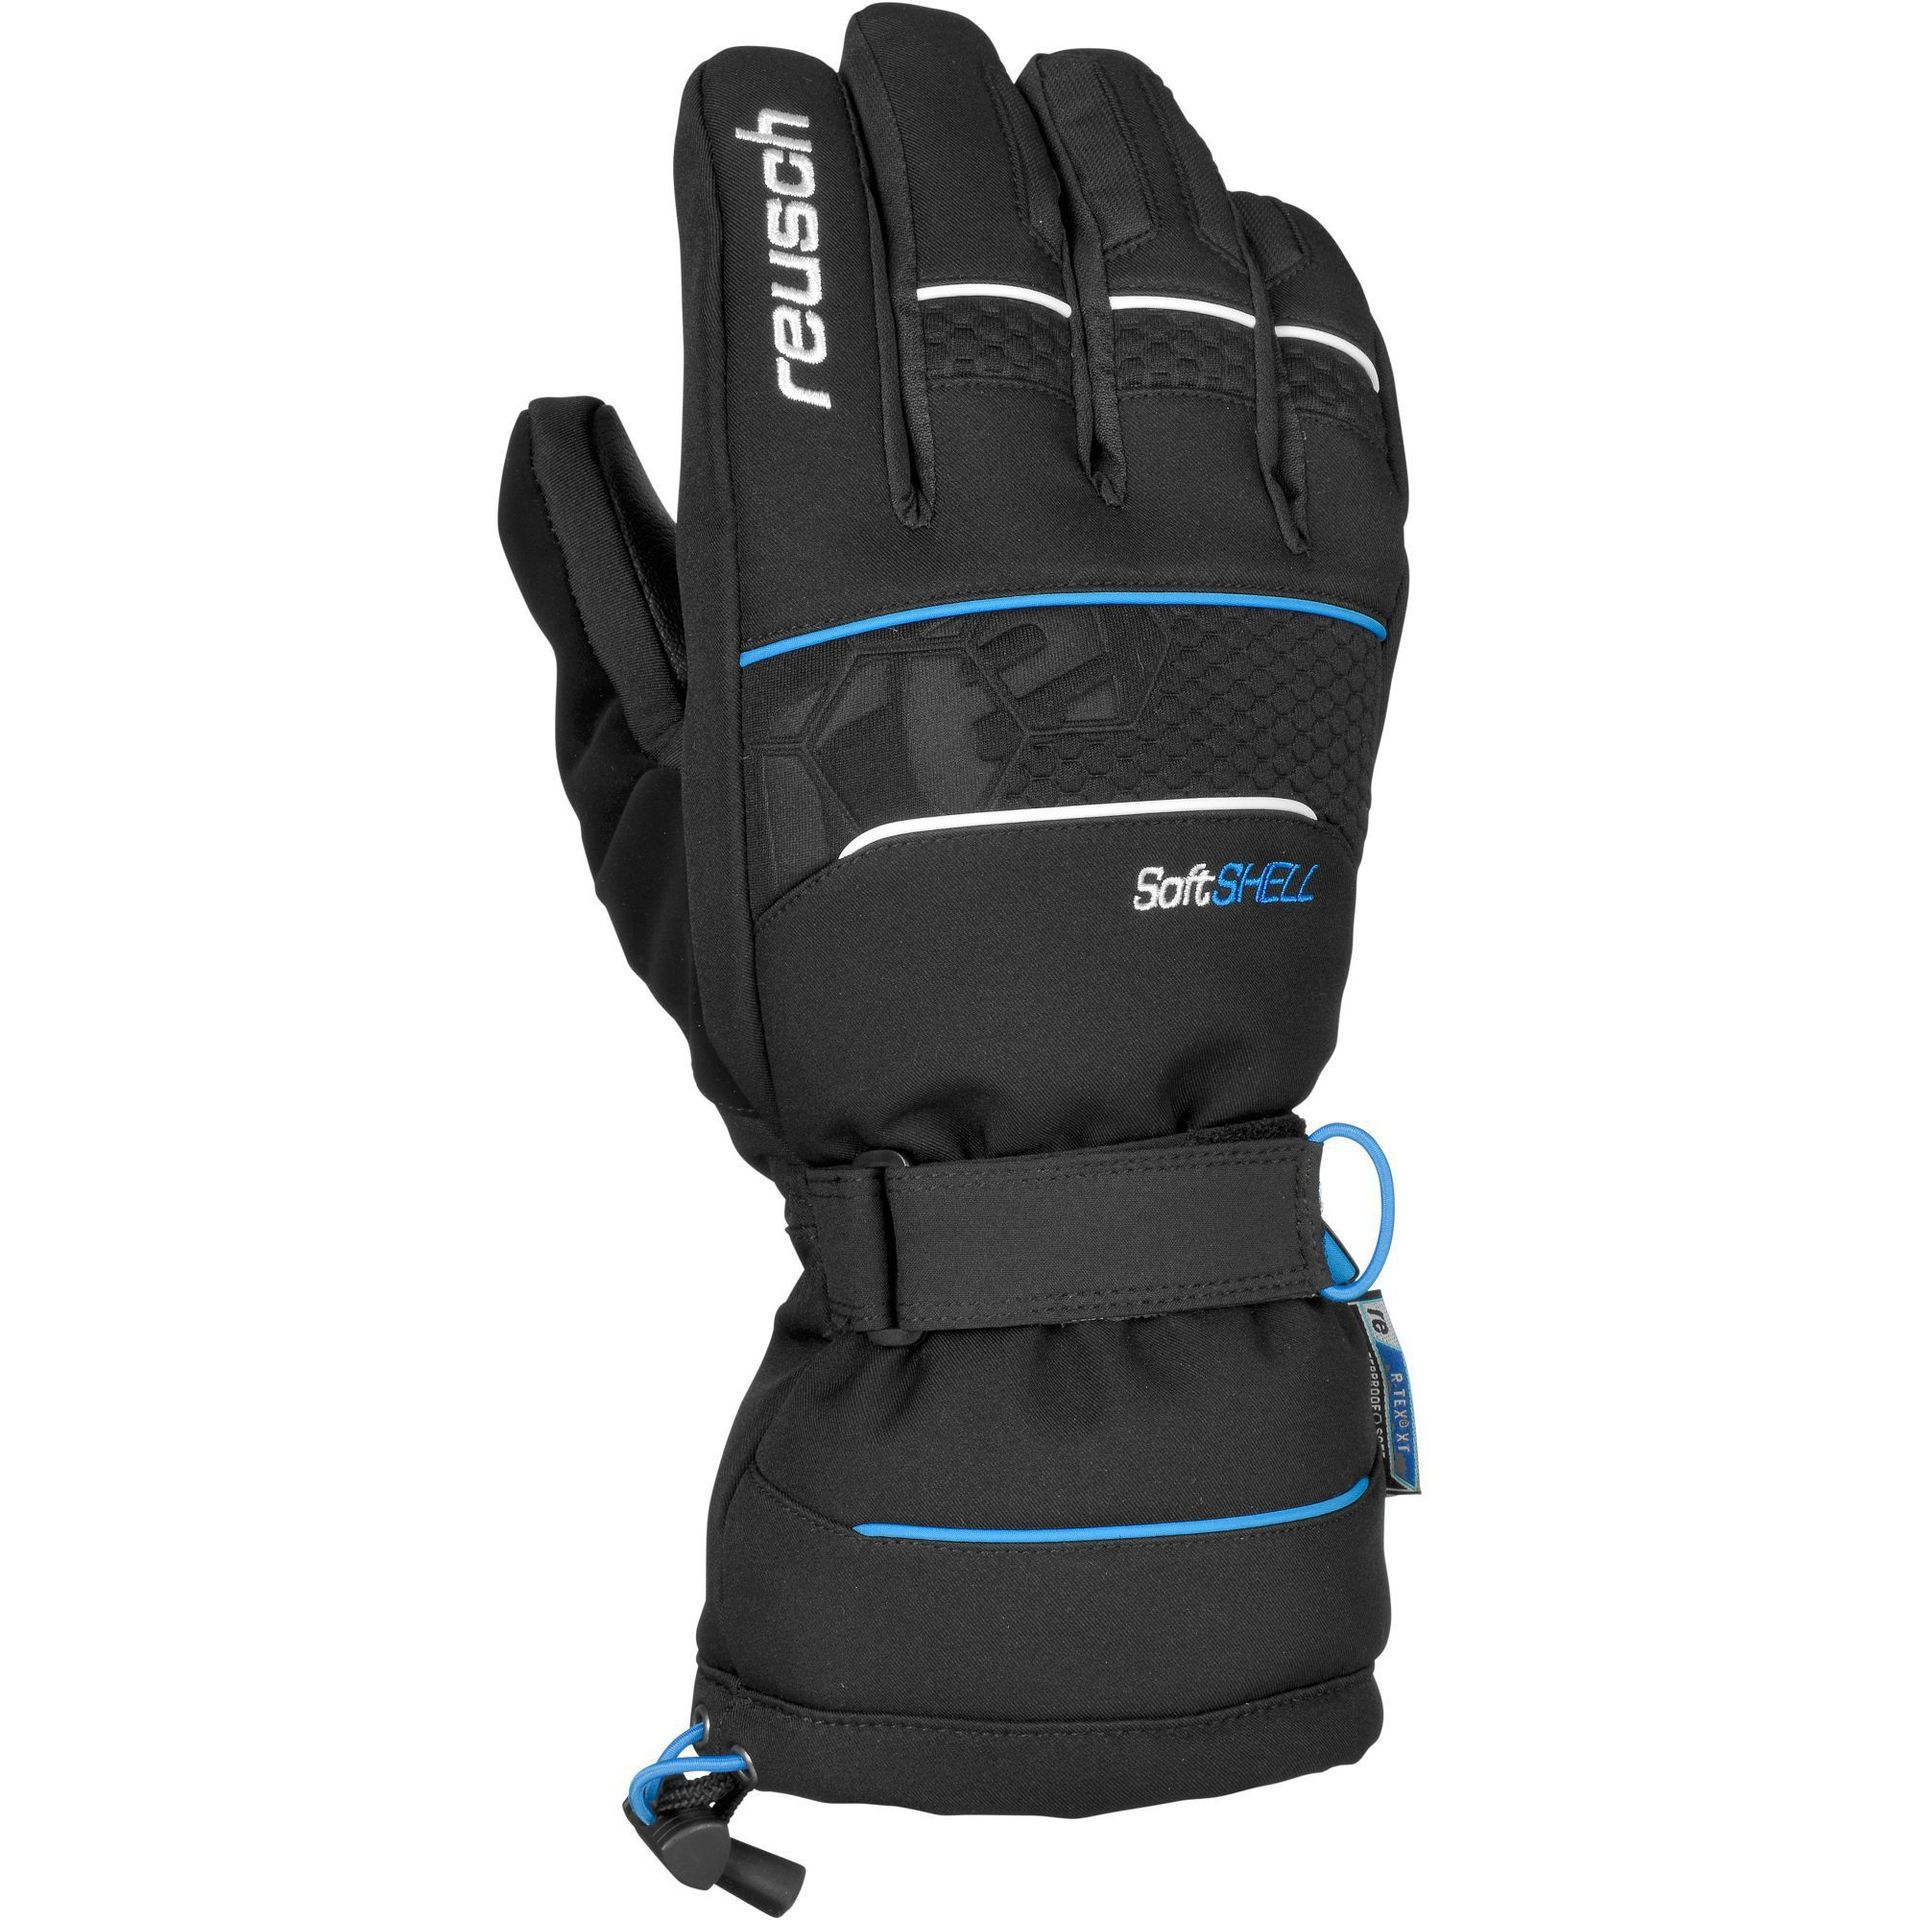 RĘKAWICE REUSCH CONNOR R-TEX XT 760 BLACK BRILLIANT BLUE